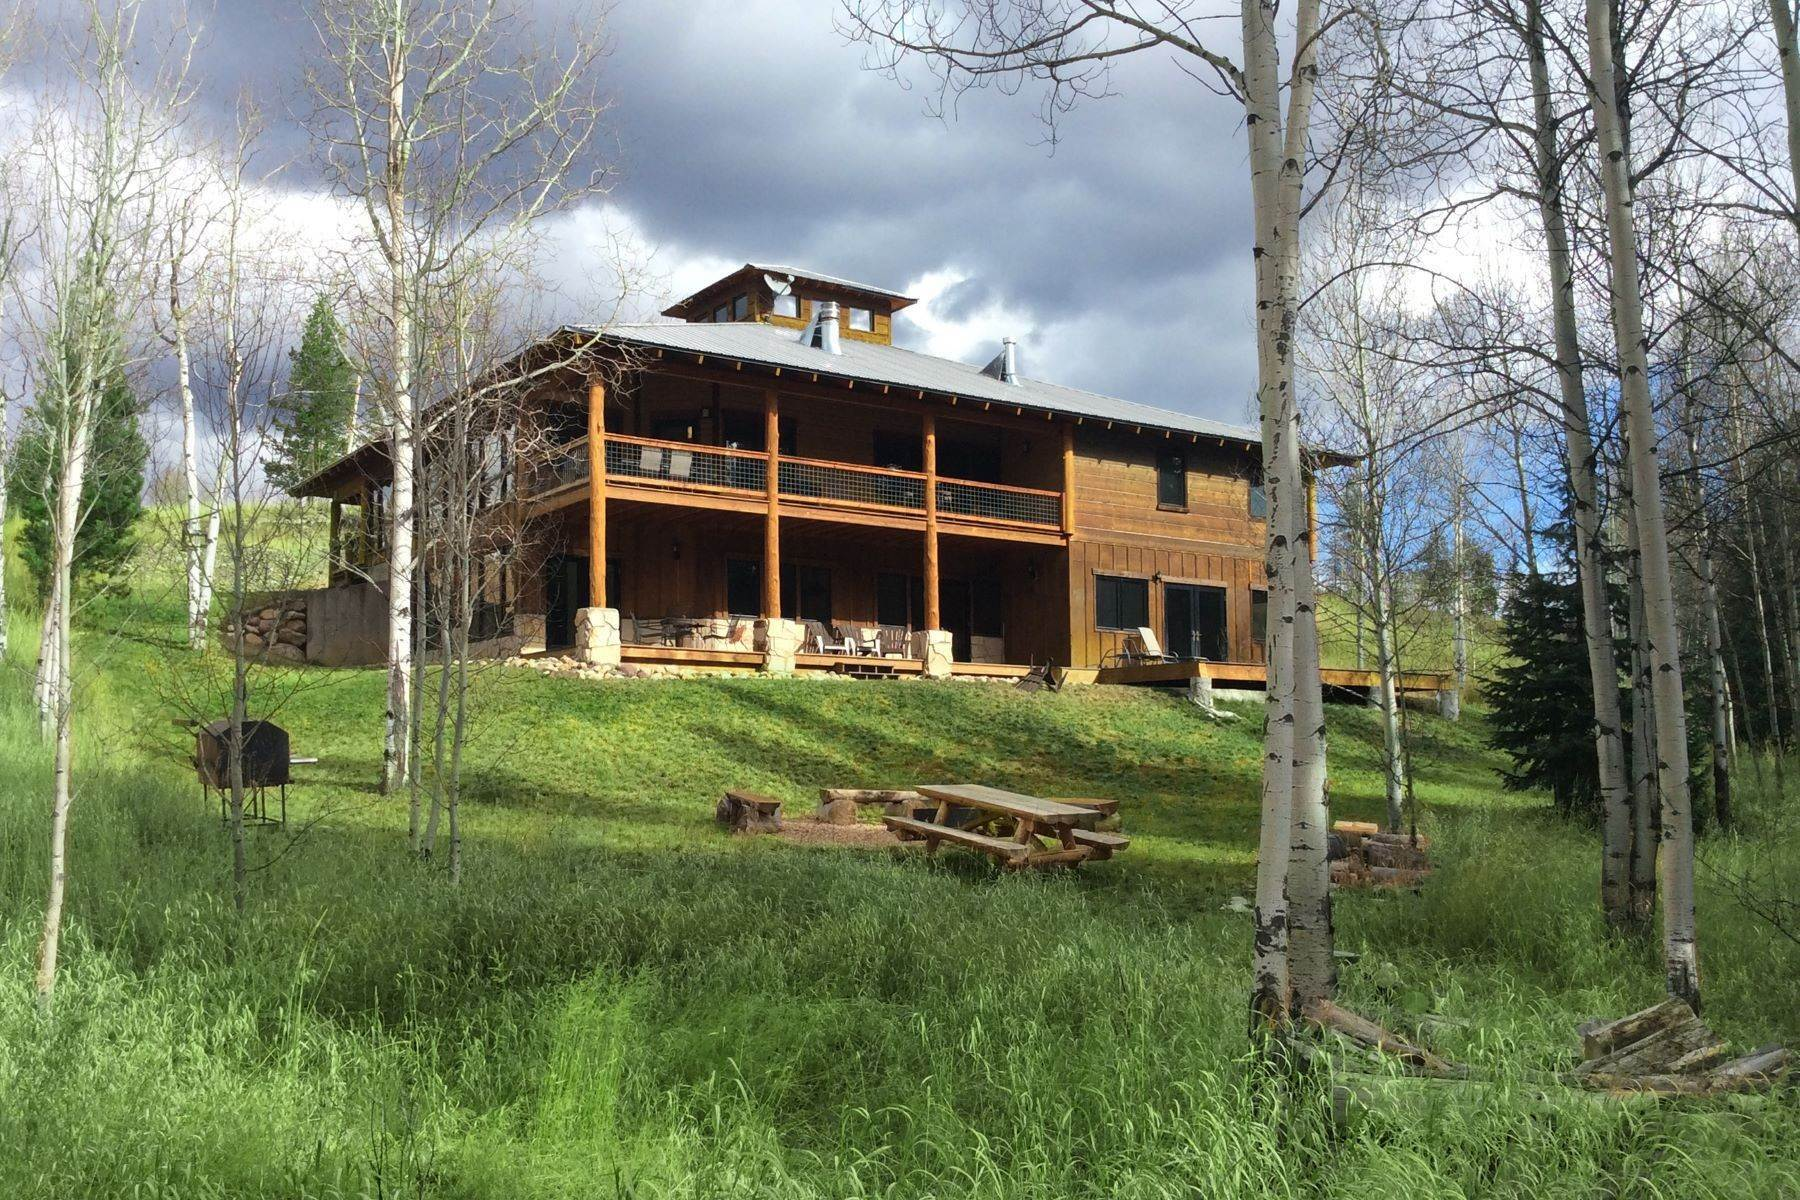 Single Family Homes for Sale at Stagecoach Seclusion 32935 & 32950 Maverick Way Oak Creek, Colorado 80467 United States